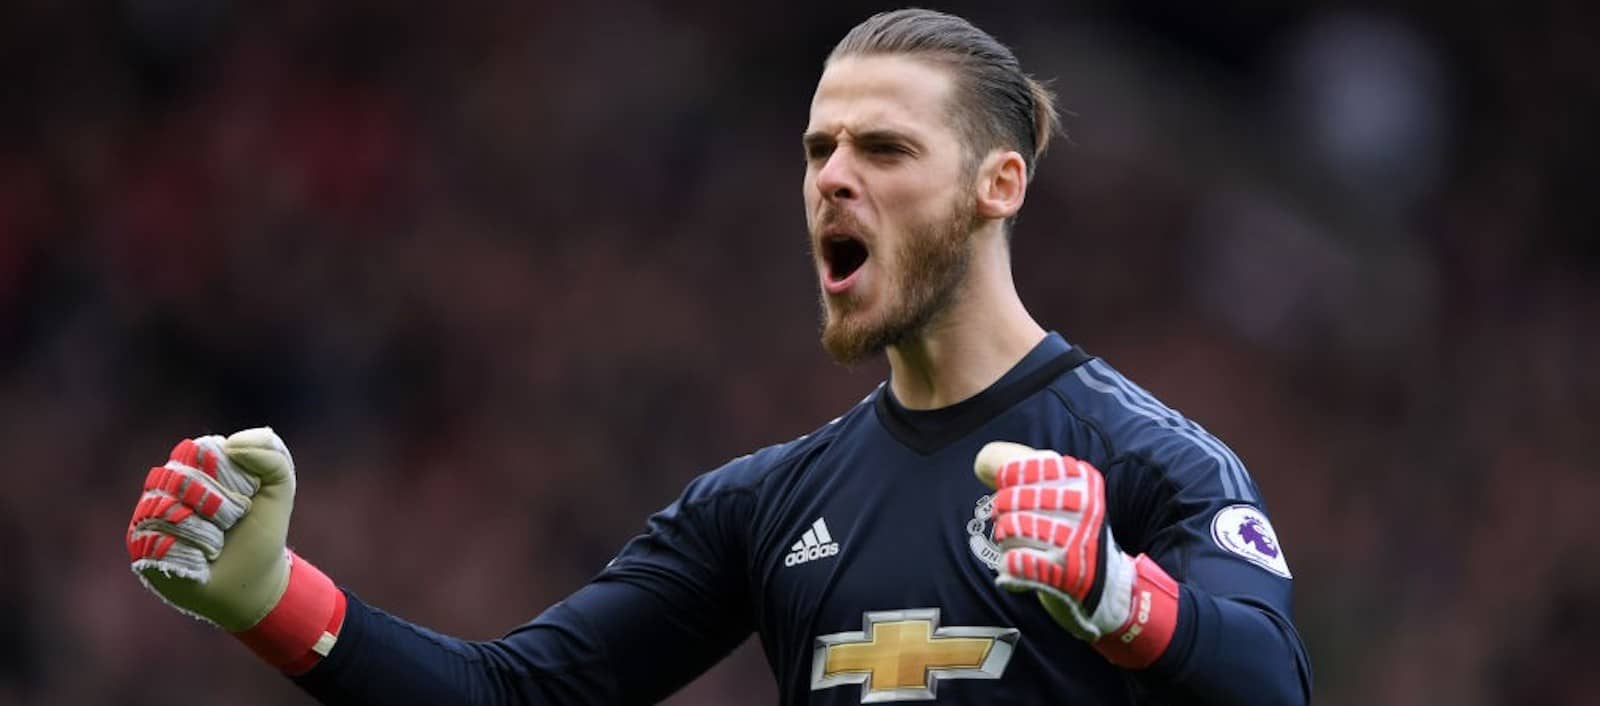 Ander Herrera: David de Gea told me Manchester United fans are the best